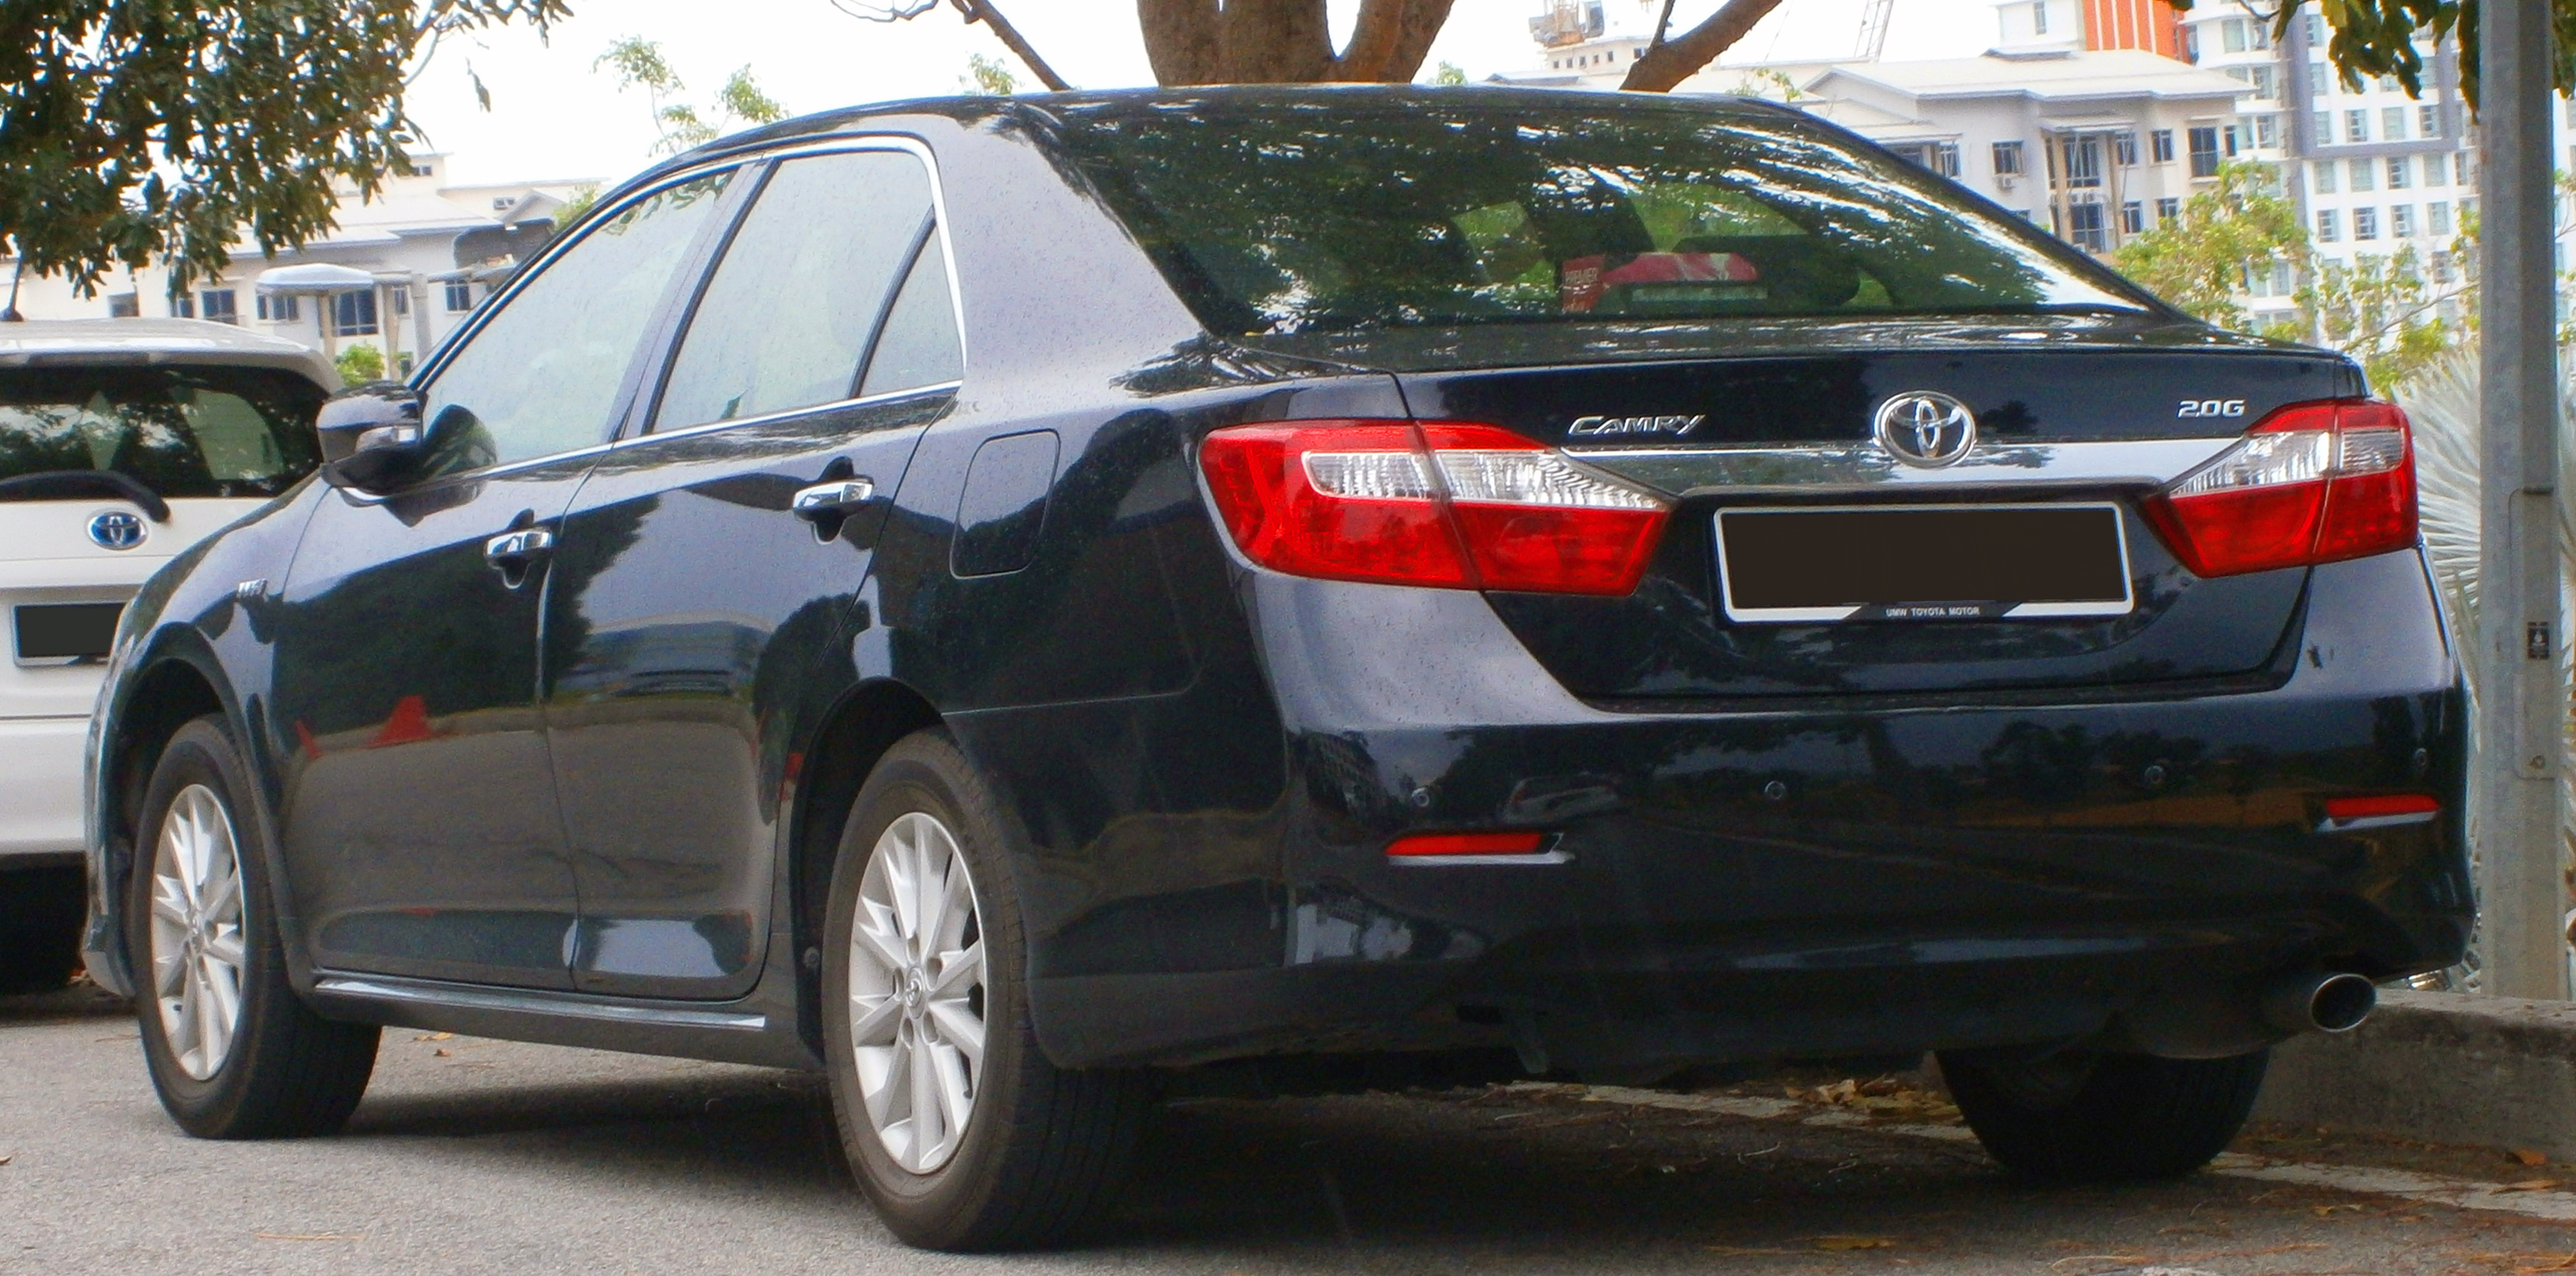 file 2012 toyota camry 2 0g in cyberjaya malaysia 02 jpg wikimedia commons. Black Bedroom Furniture Sets. Home Design Ideas